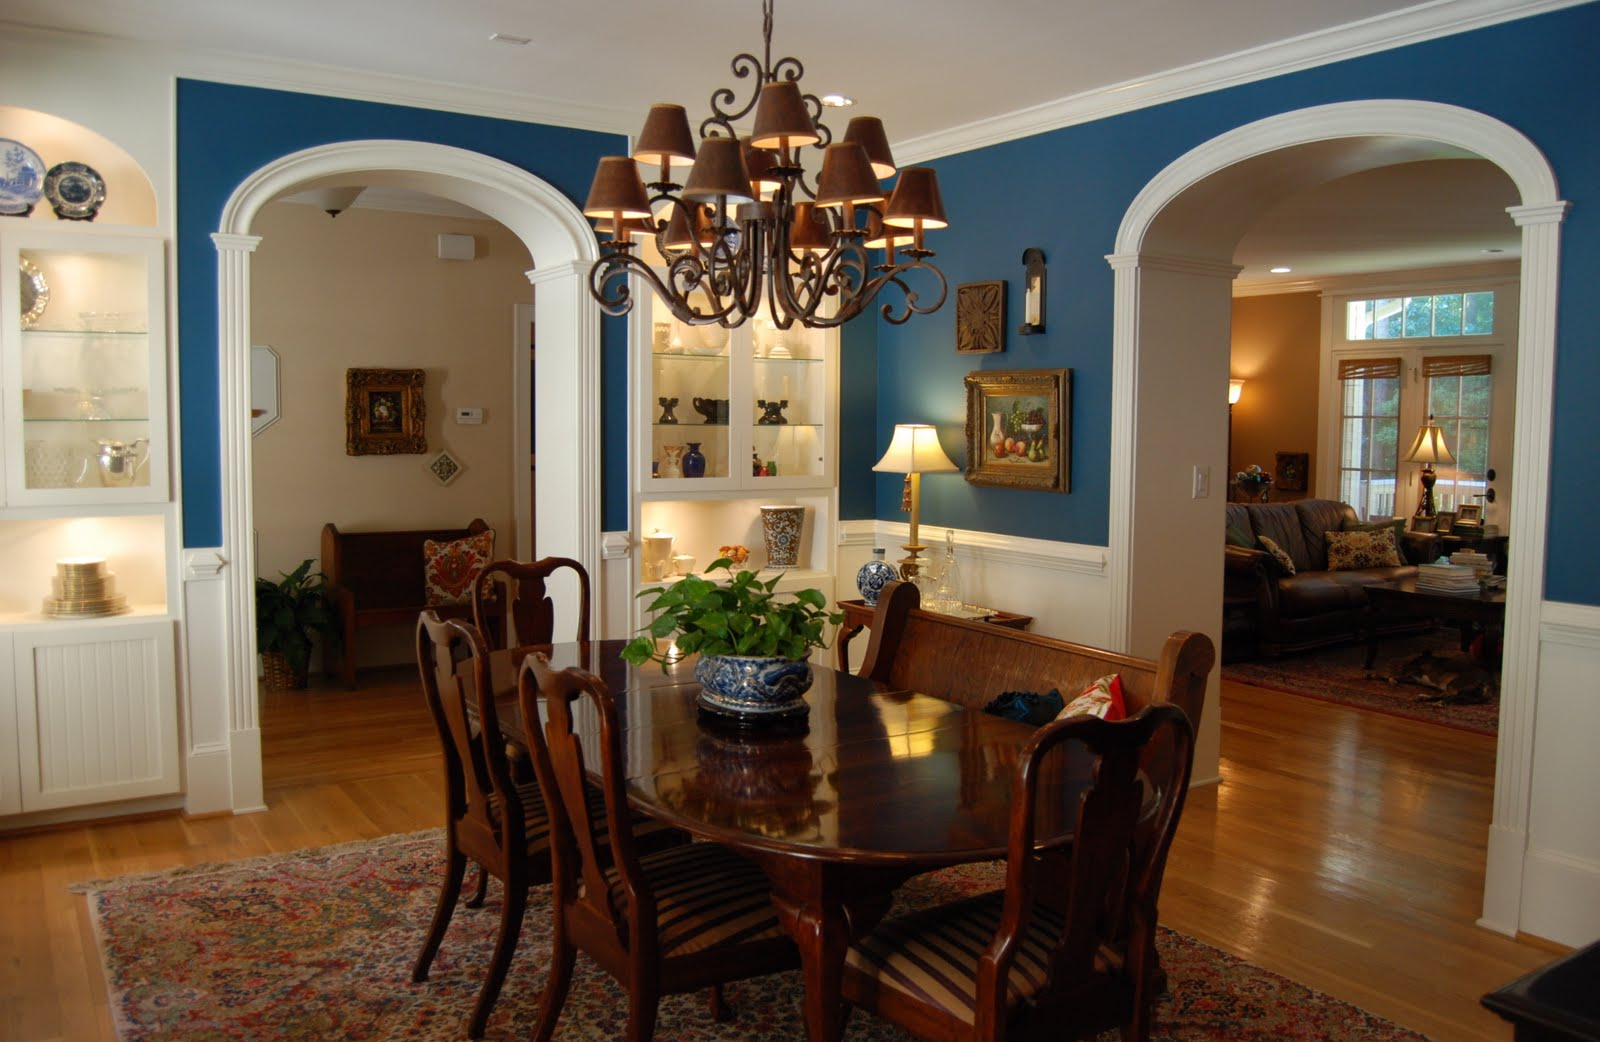 Superb Design Of The Blue Wall Ideas Added With Brown Wooden Floor And Woden Table